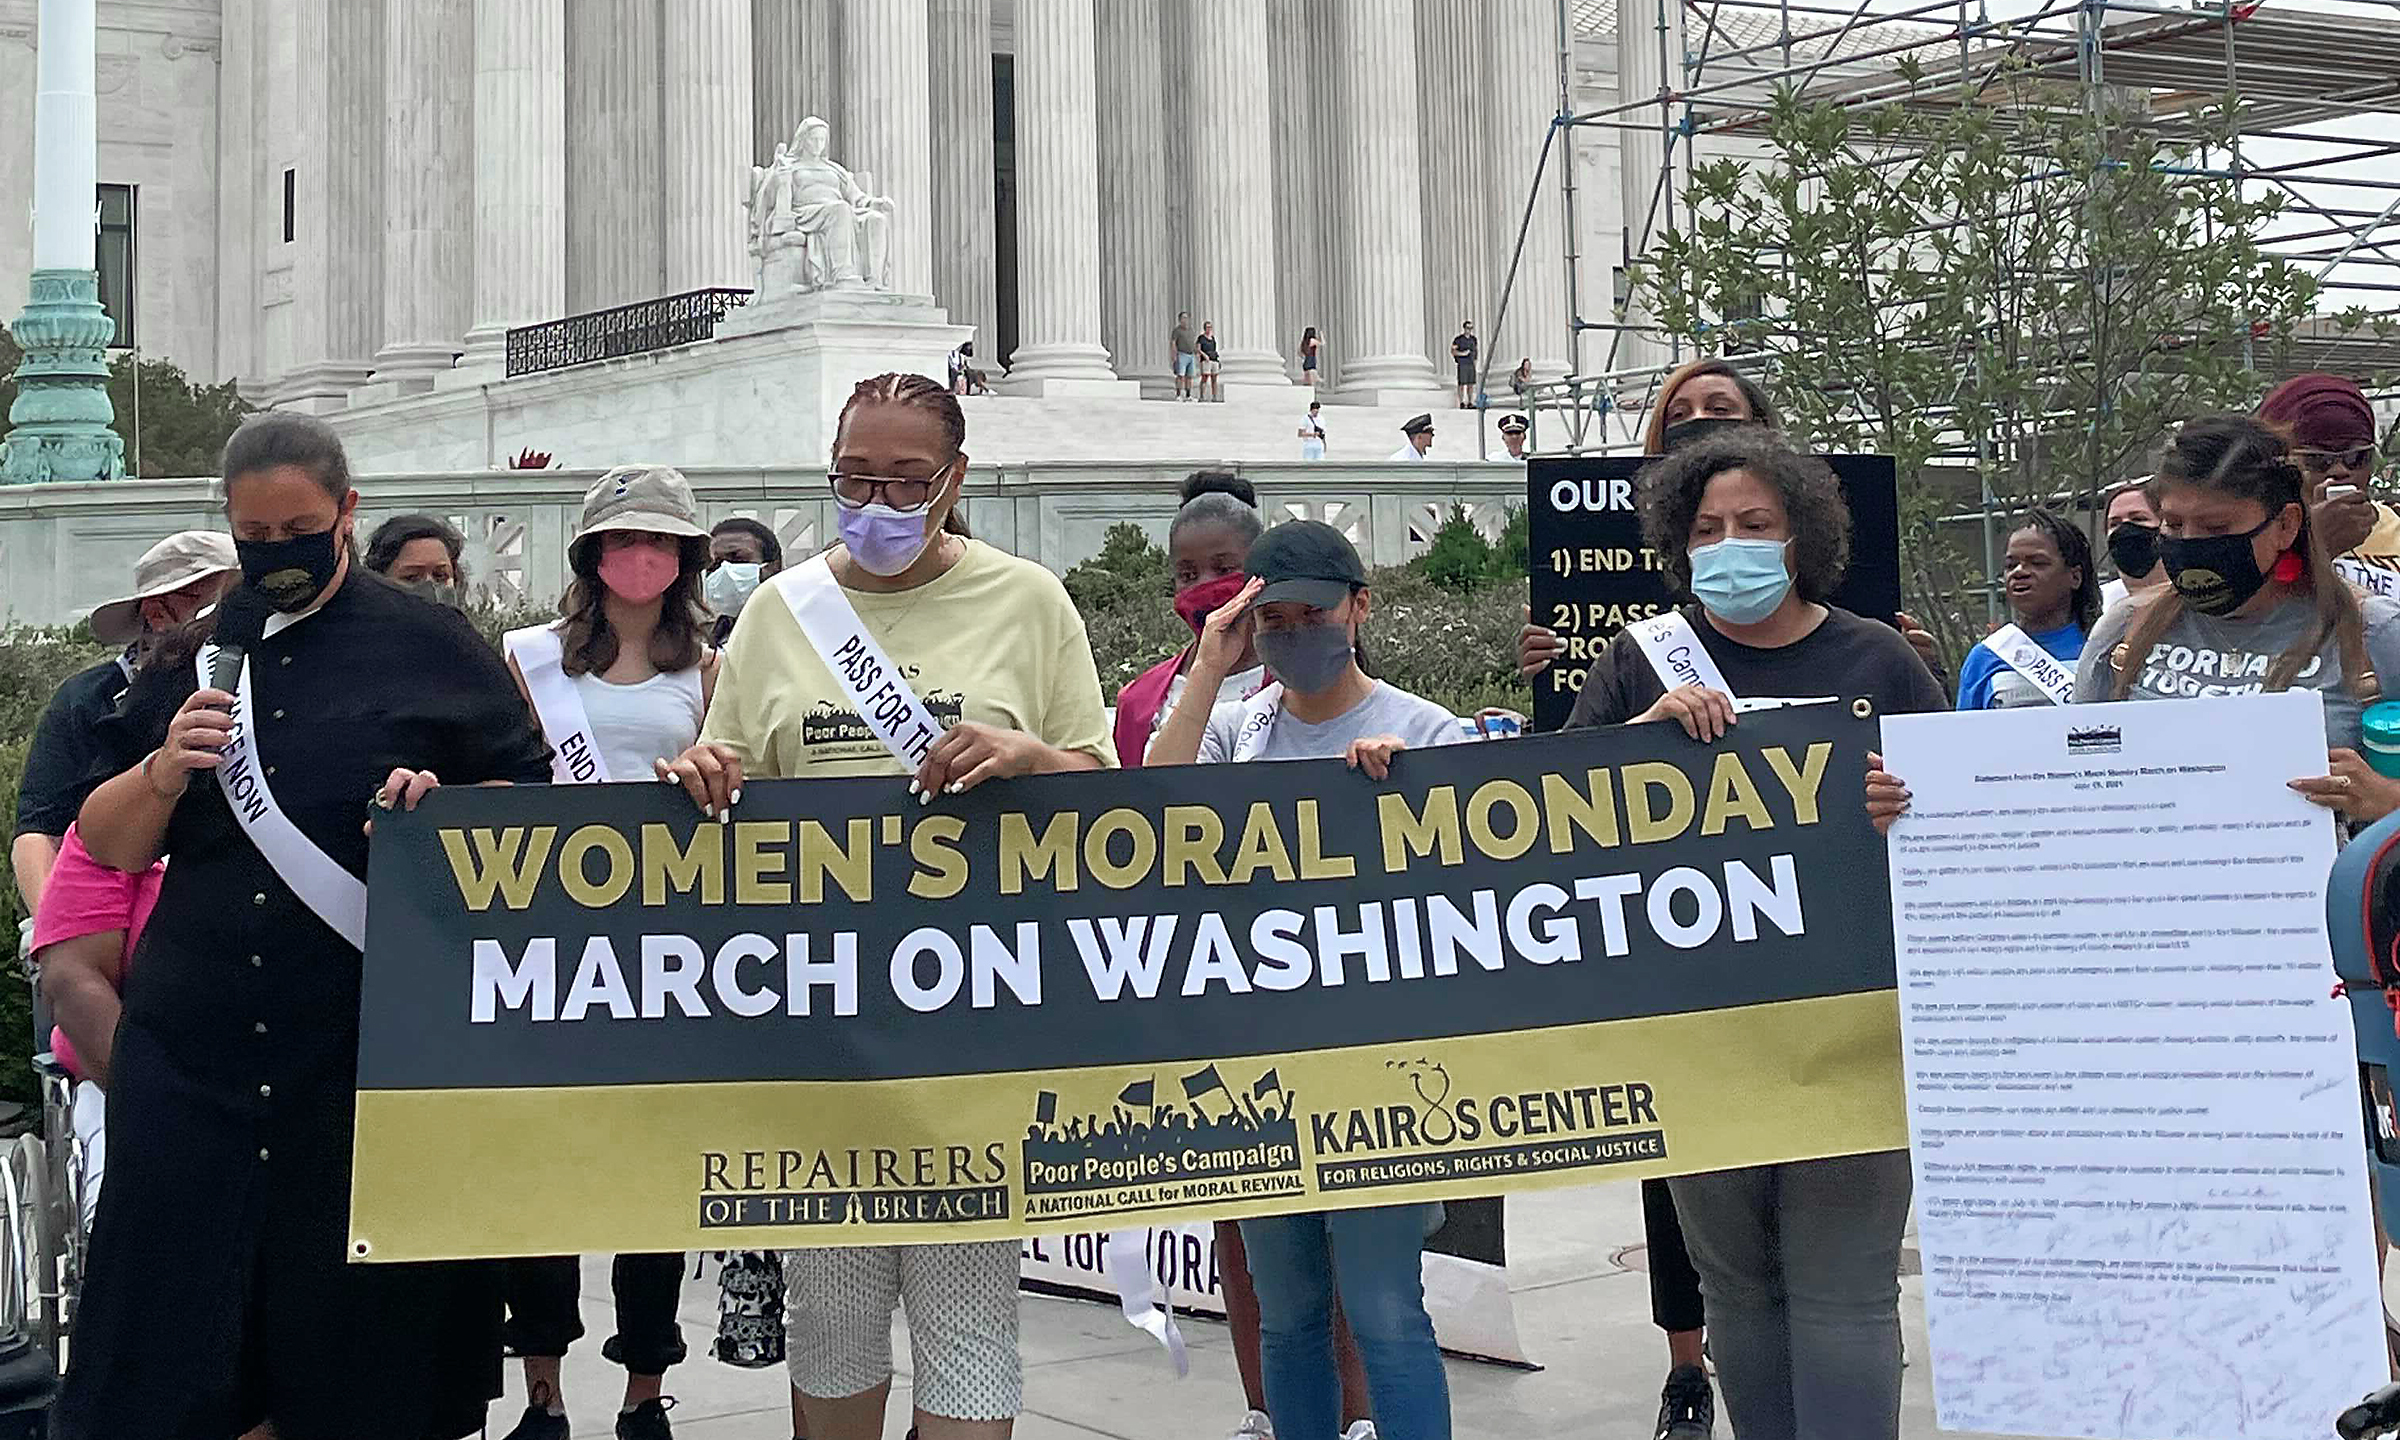 'Our democracy is in peril': Women risk arrest in voting rights protest in D.C.